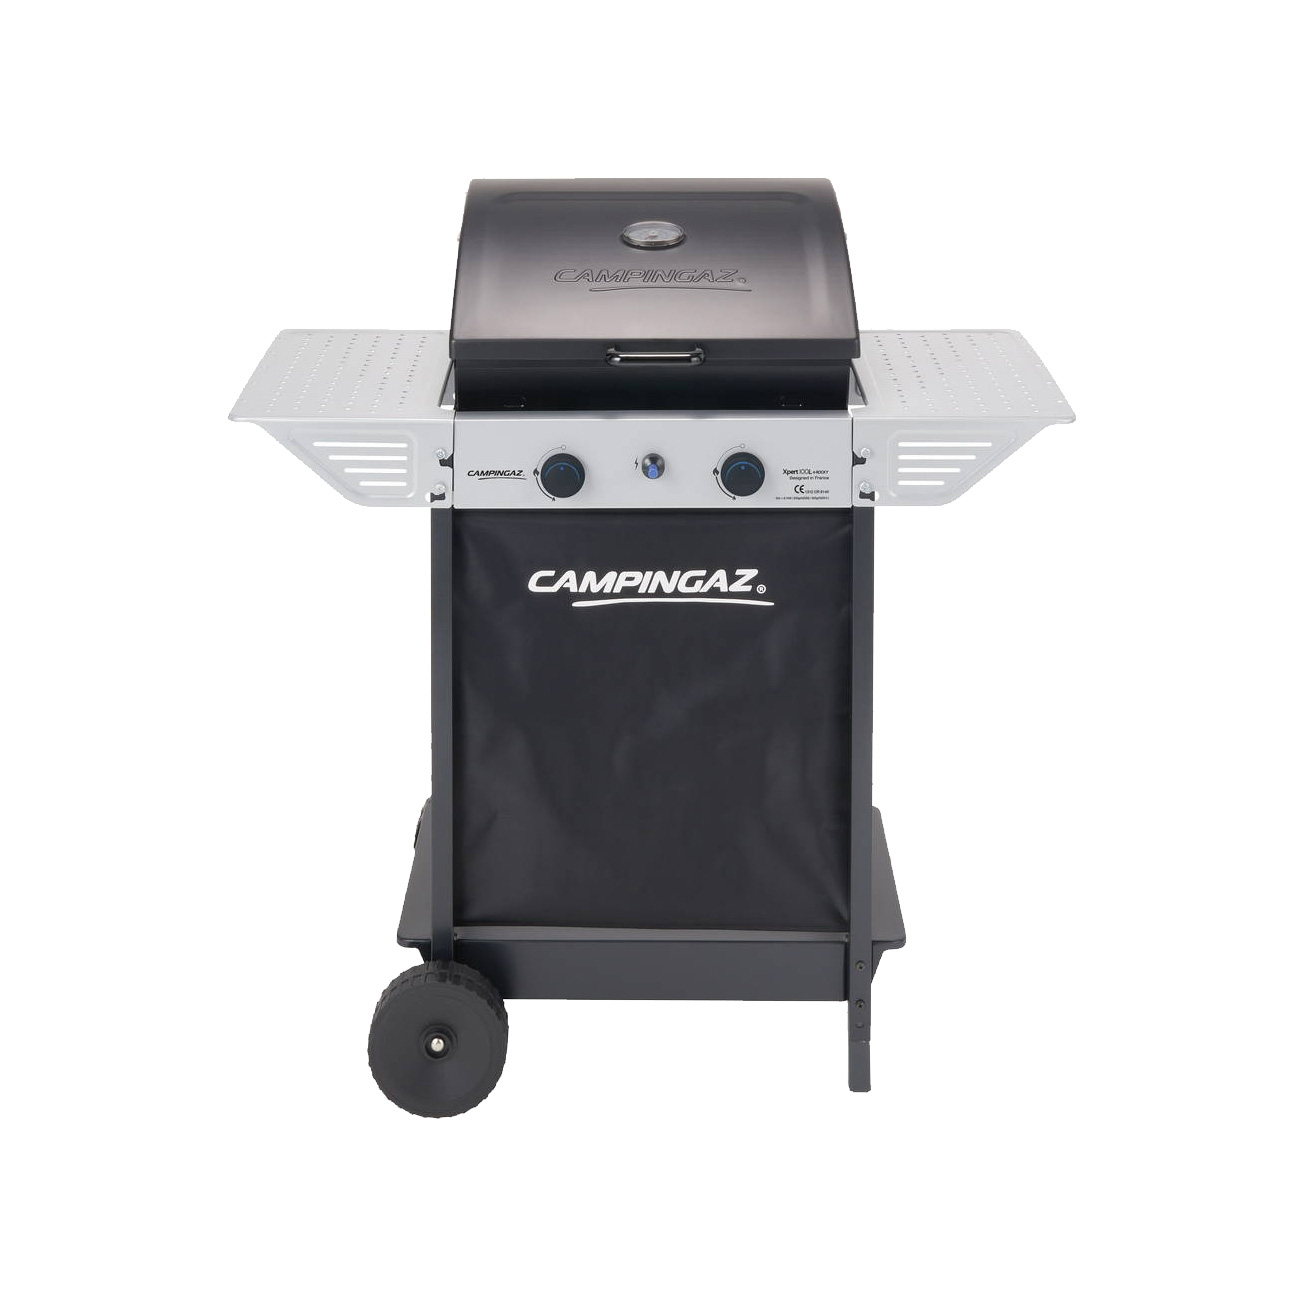 Campingaz XPERT 100 L + ROCKY gas BBQ with oven and grill